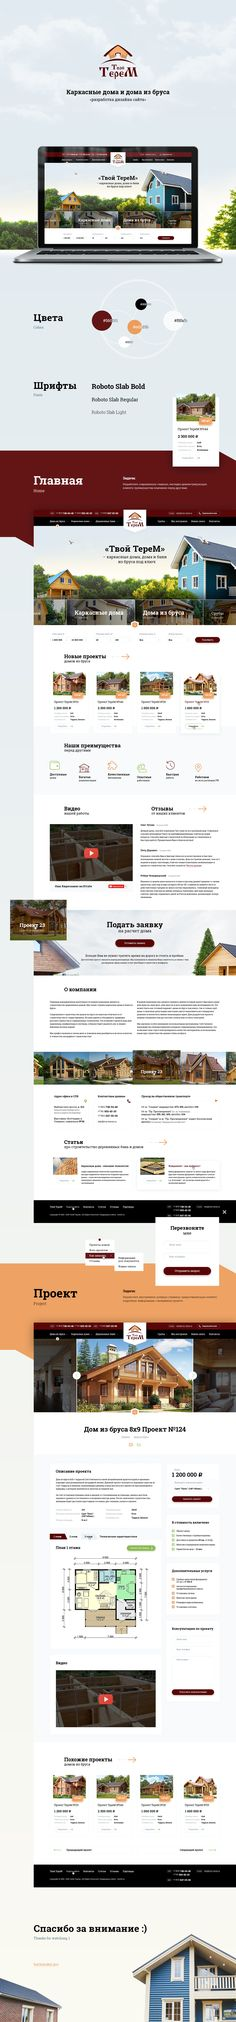 Your house - design site